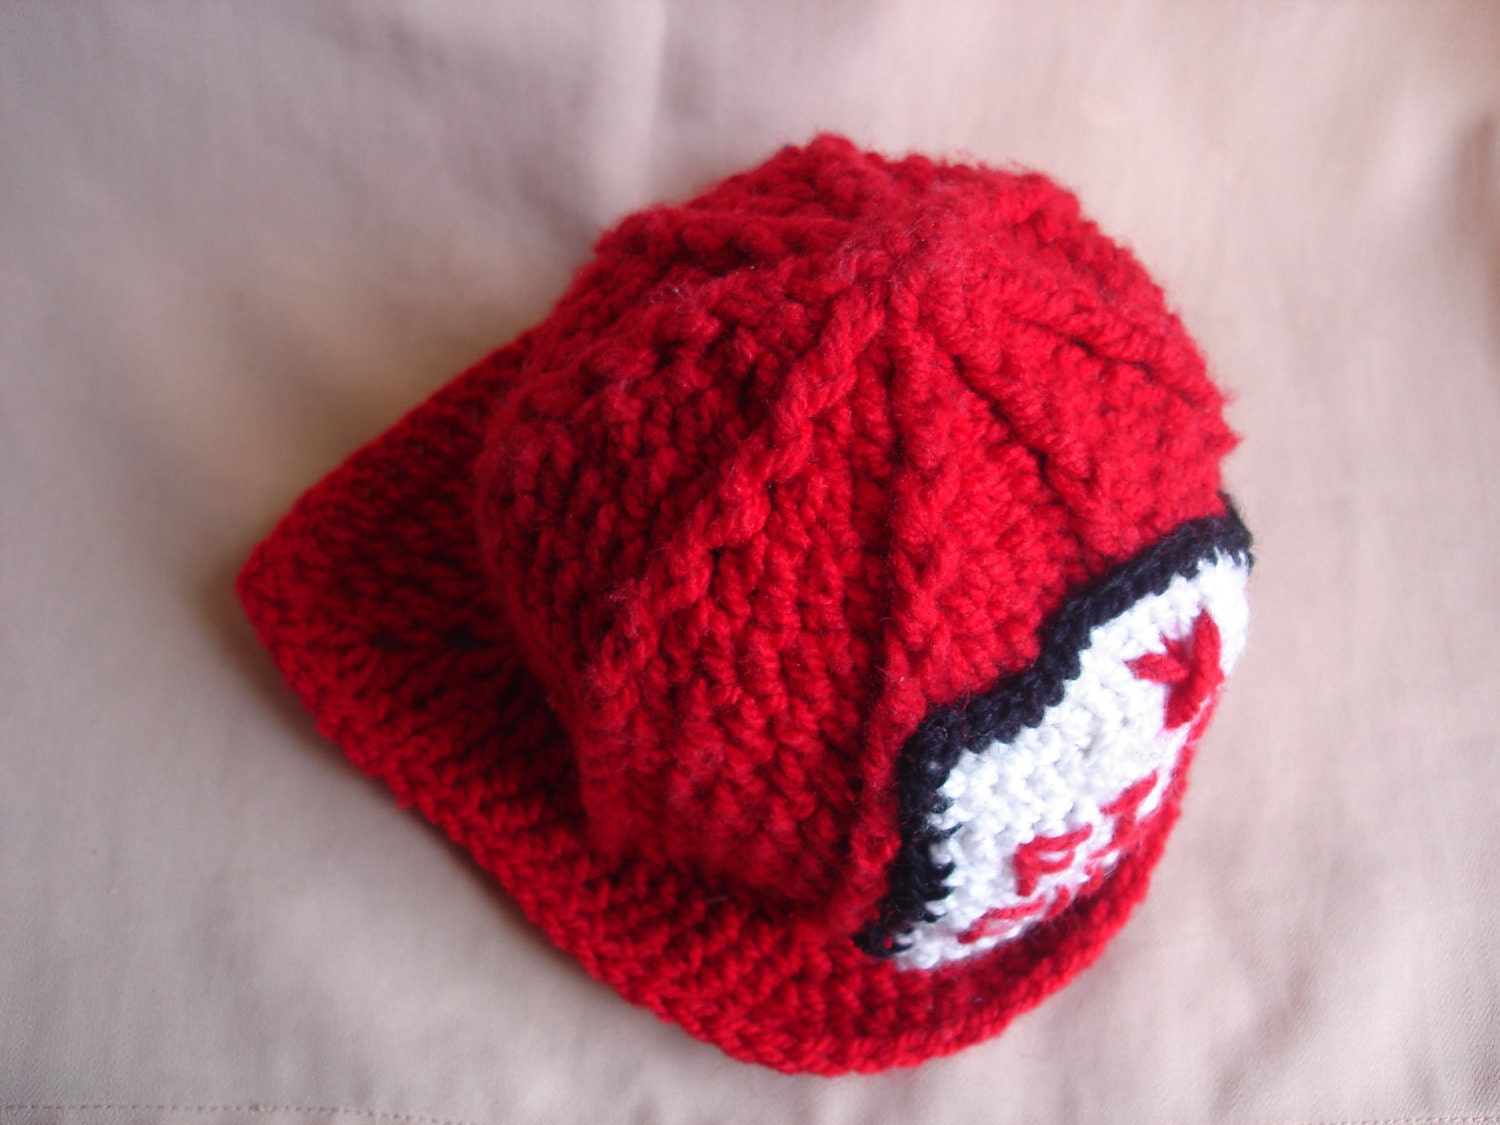 Crochet Pattern For Baby Fireman Hat : CROCHET PATTERN Crochet fireman hat pattern by Thehobbyhopper